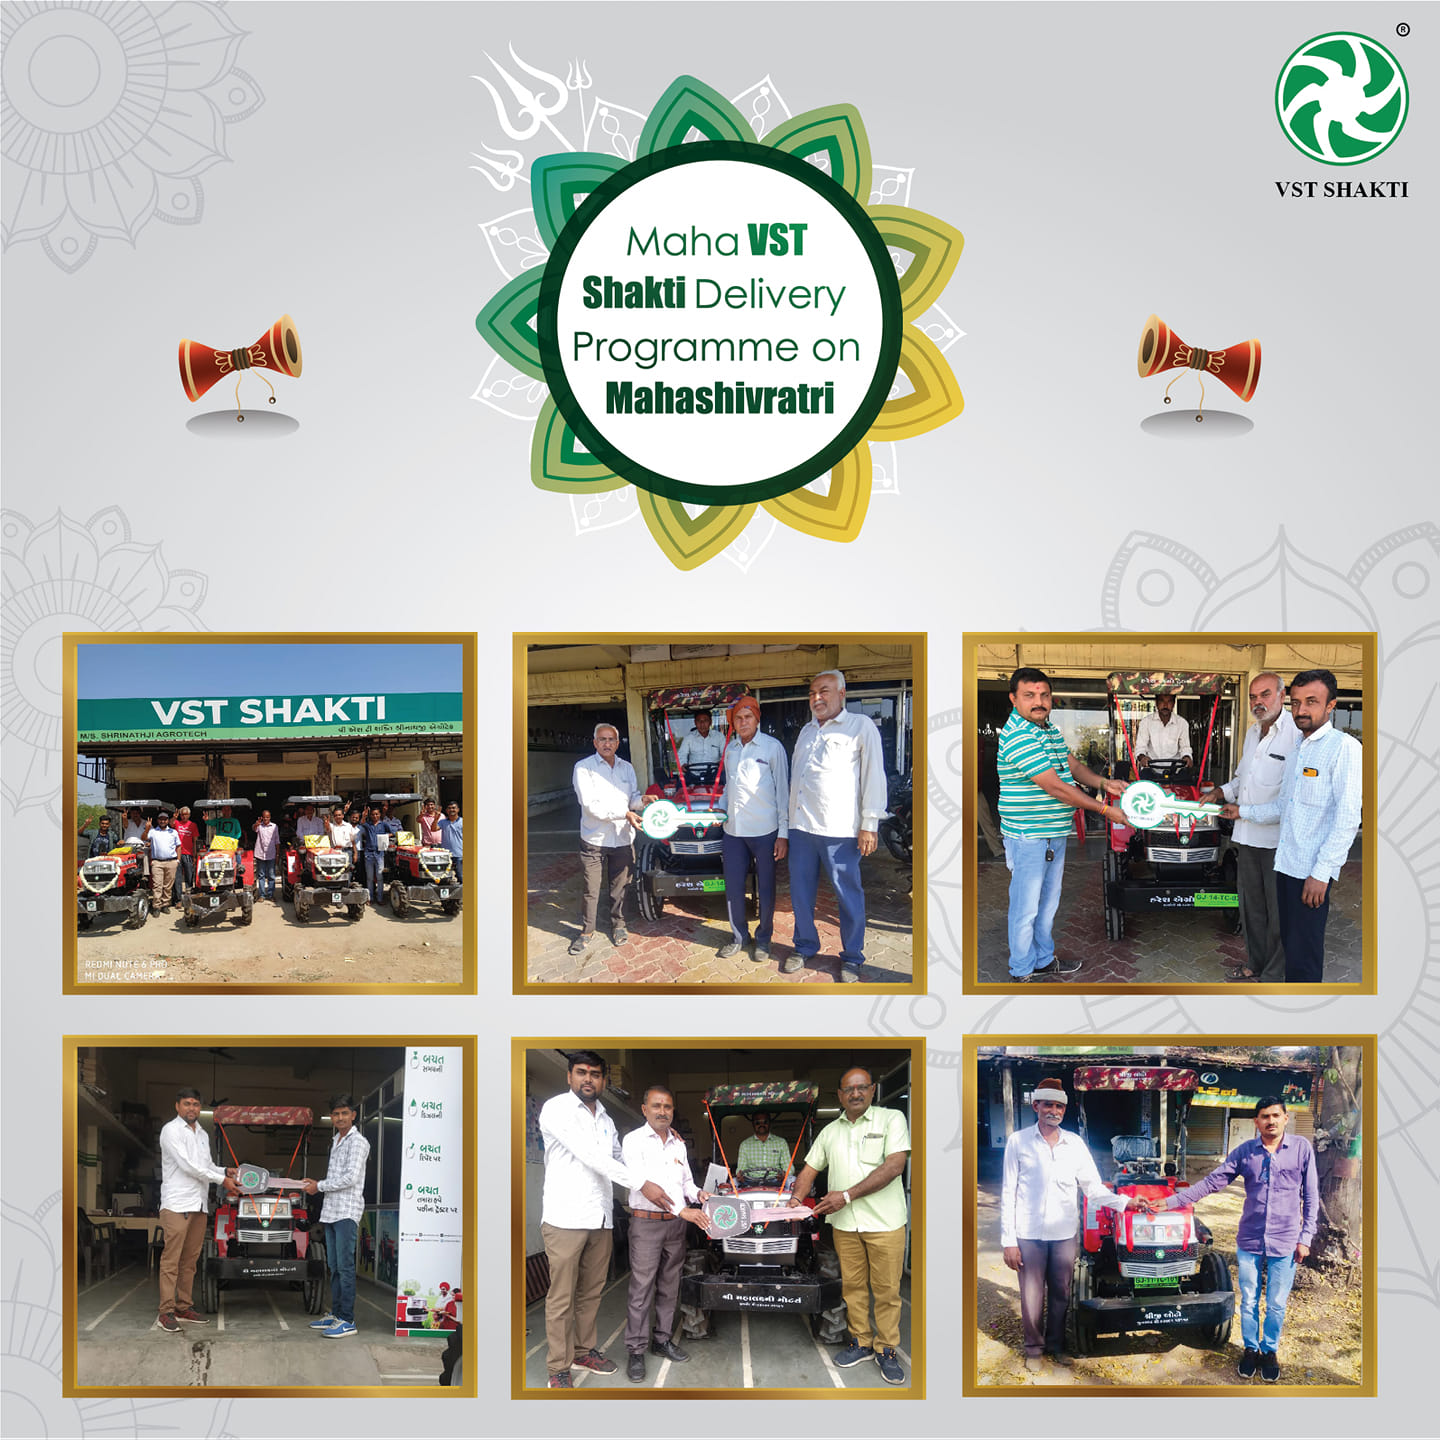 On the festive occasion of Mahashivratri, our dealers from Gujarat organised Maha VST Shakti delivery programmes across Gujarat.